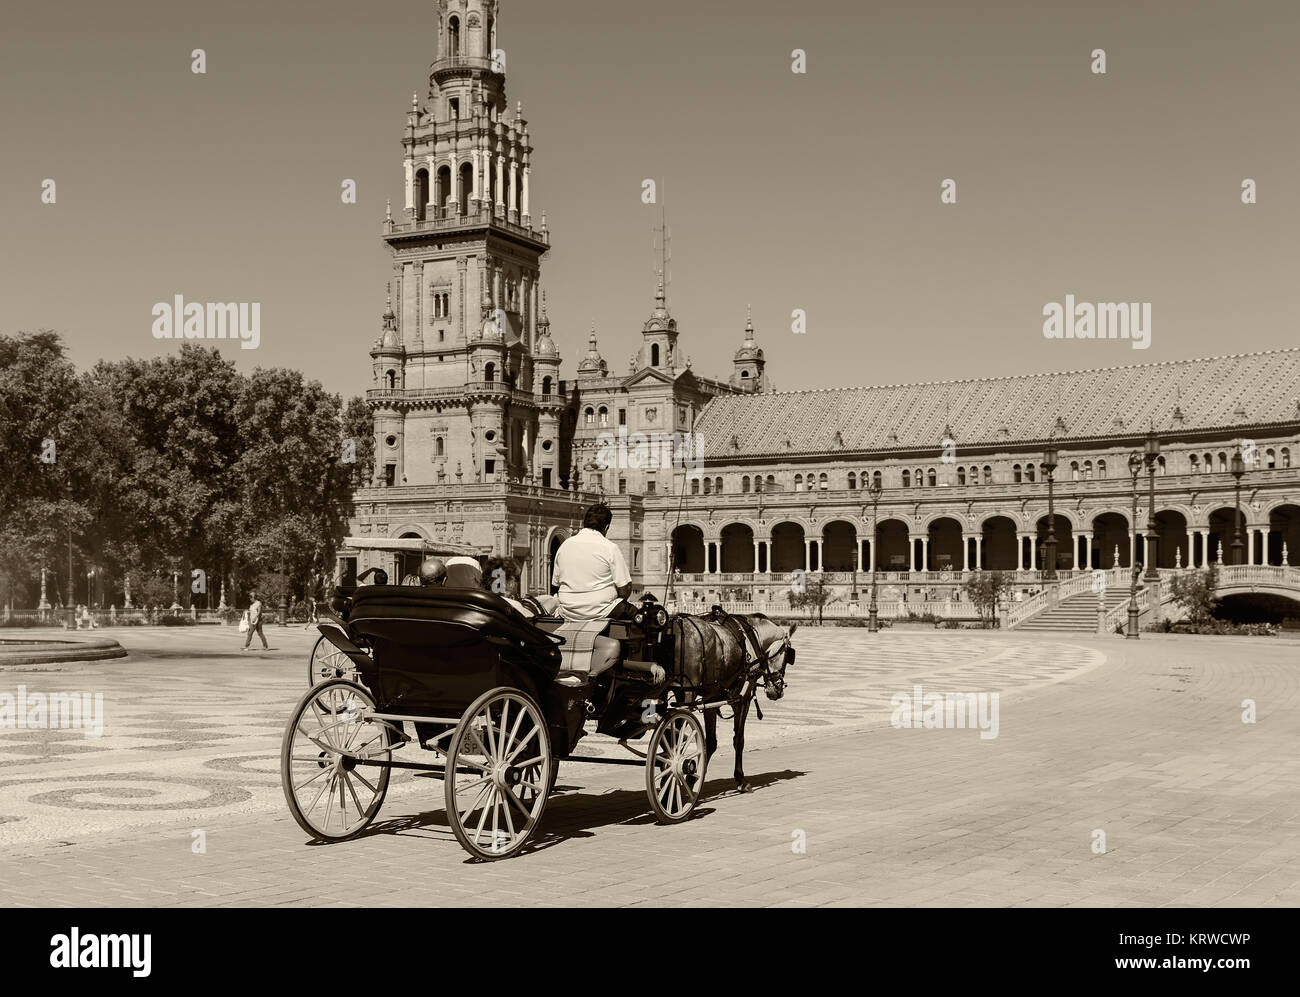 Urban Tourism. Carriage rides around the plaza of Spain in Seville. Spain. - Stock Image